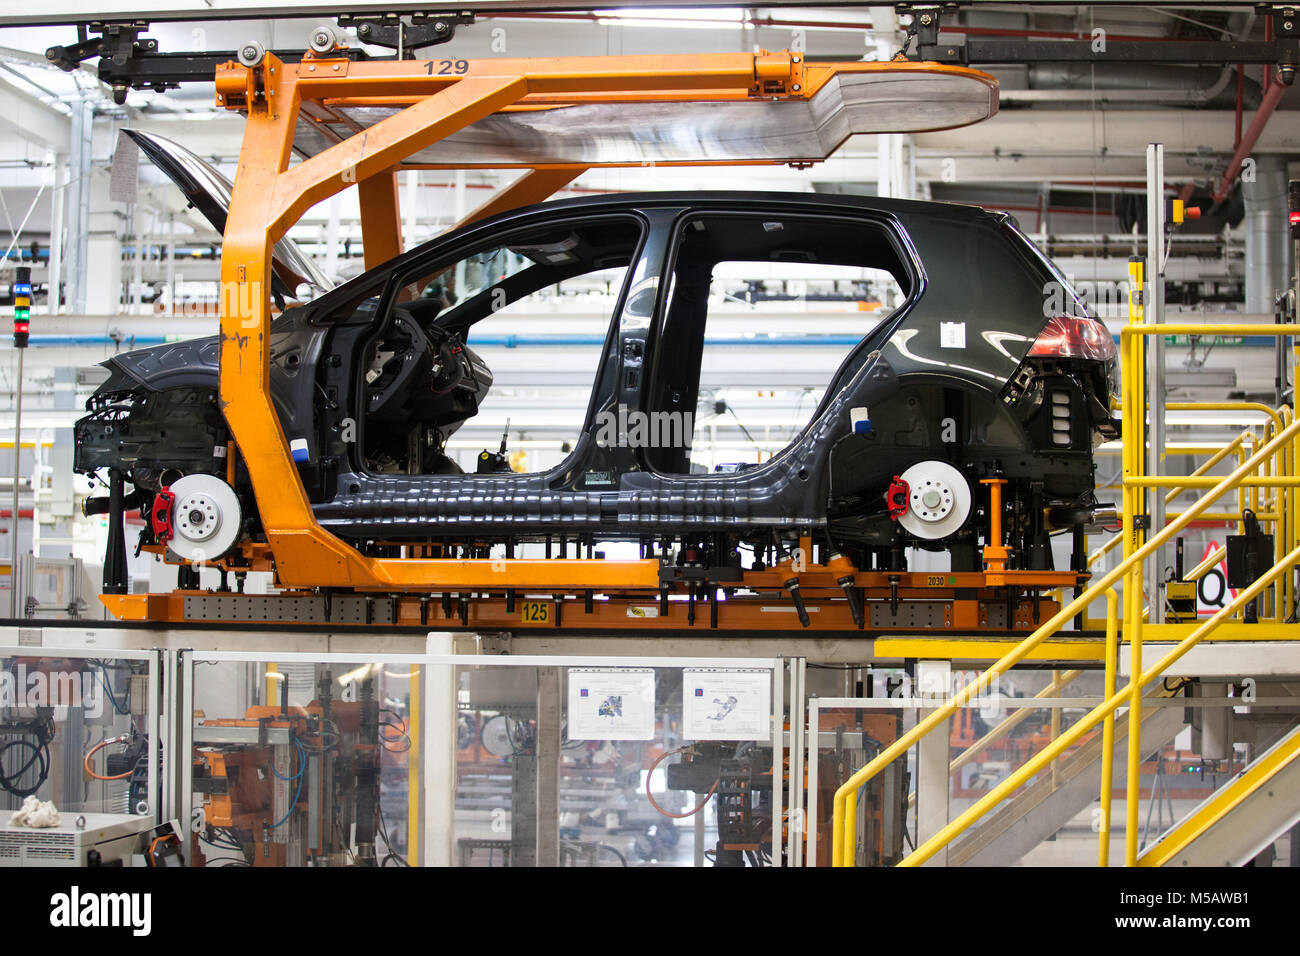 A Golf vehicle frame at the Volkswagen factory in Puebla, Mexico on Wednesday, January 21, 2015. This is one of Stock Photo